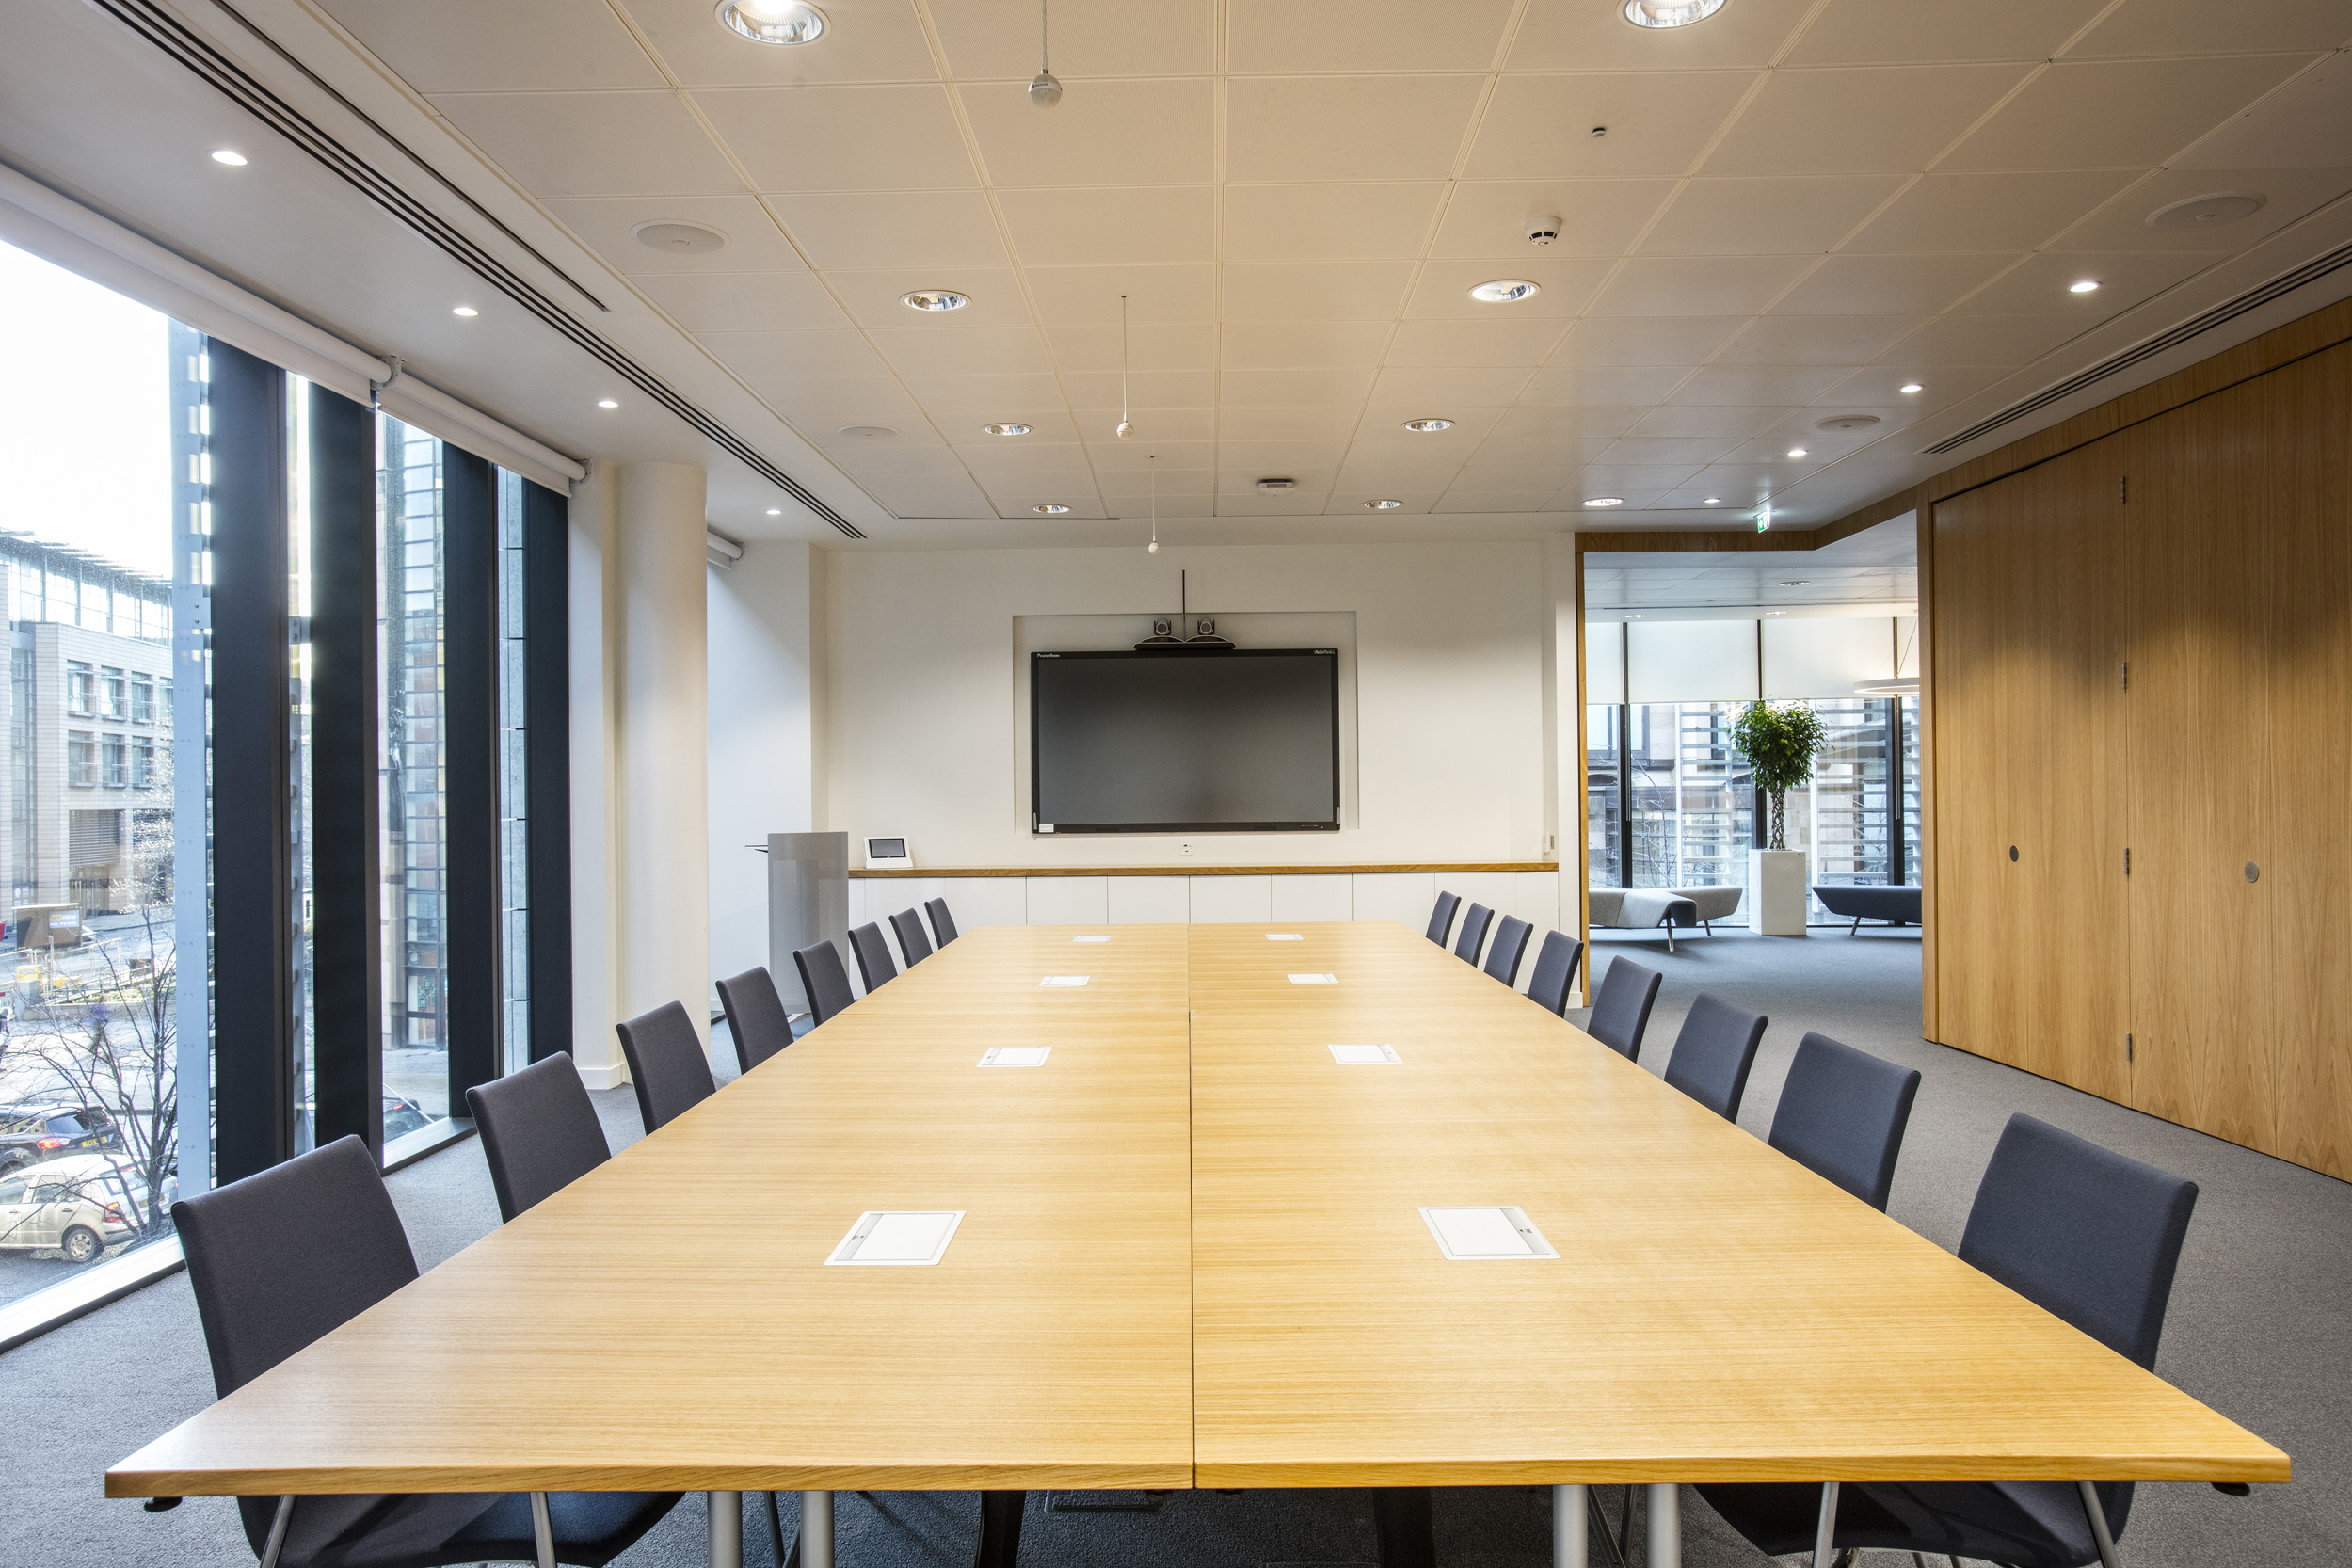 Venue Hire Conference Centre At Atria One Law Society Of Scotland - Conference room table set up